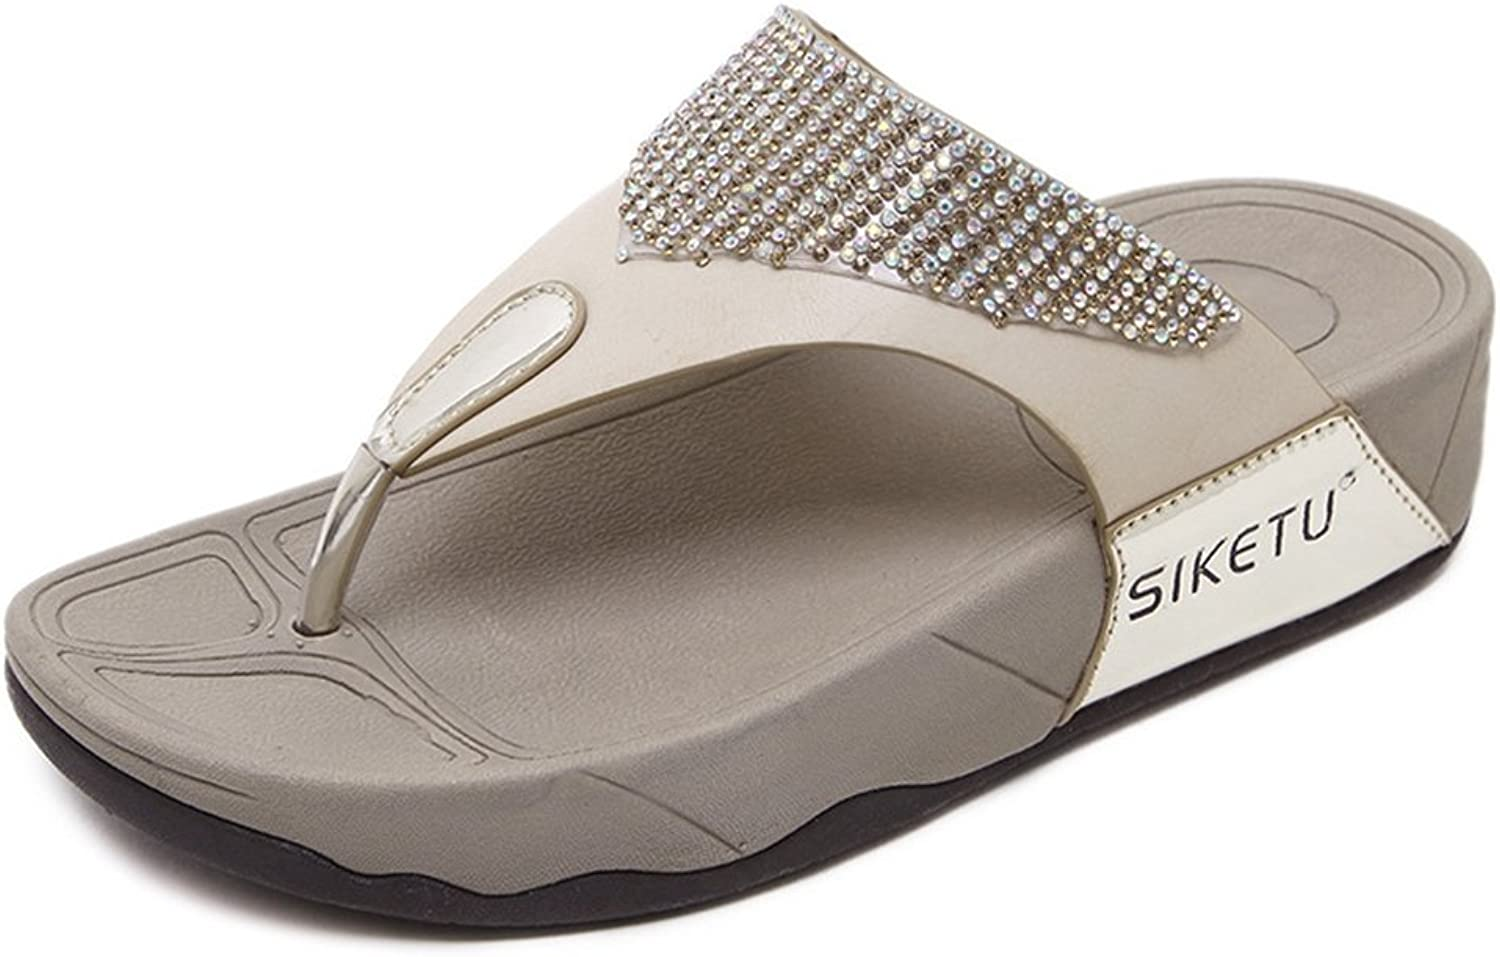 AVENBER Women's Thong Flip-Flop Sandals Crystal Rhinestone Slip-On Platform Thick Sole Footbed Wedge Slippers for Girls